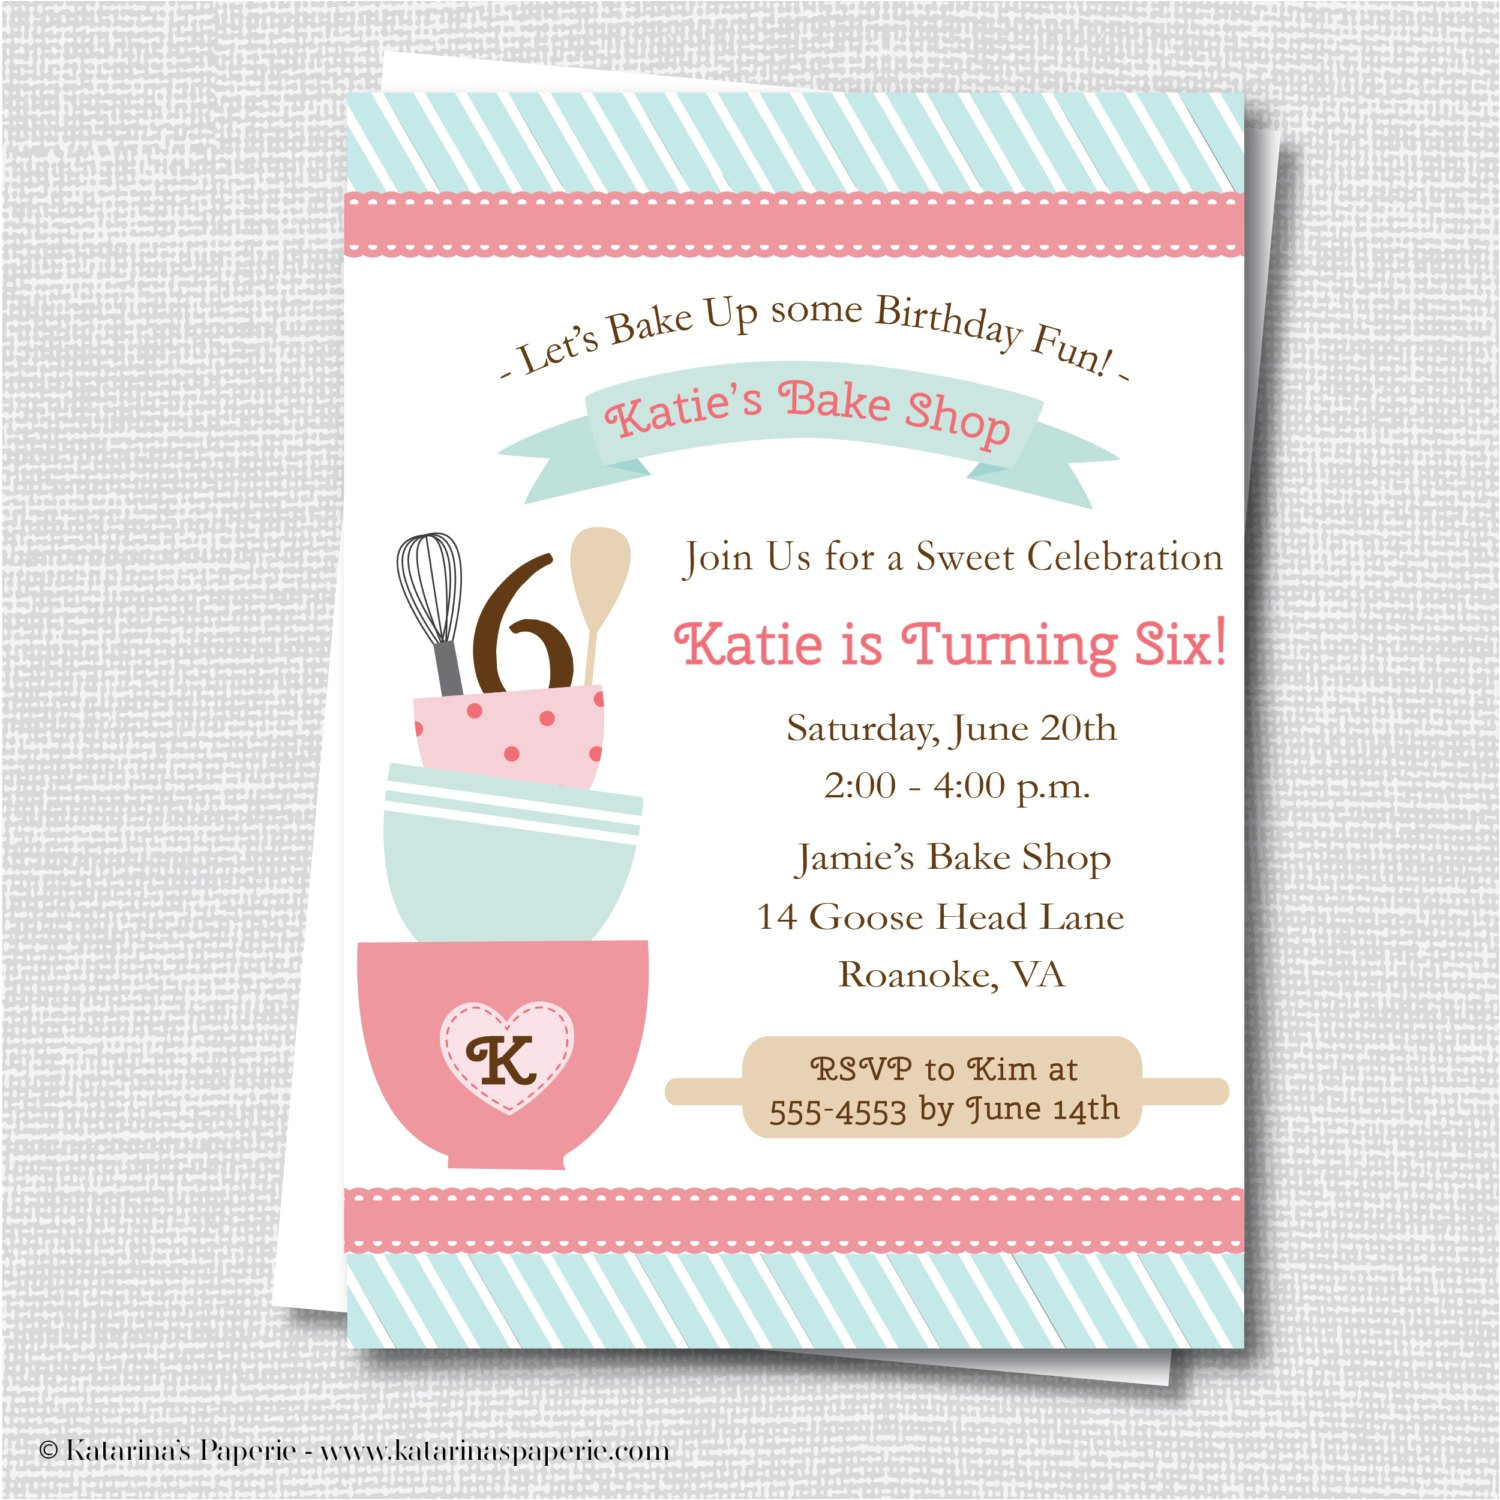 Party Supplies In Roanoke Va Baking Birthday Party Invitation Baking Party Cooking Etsy